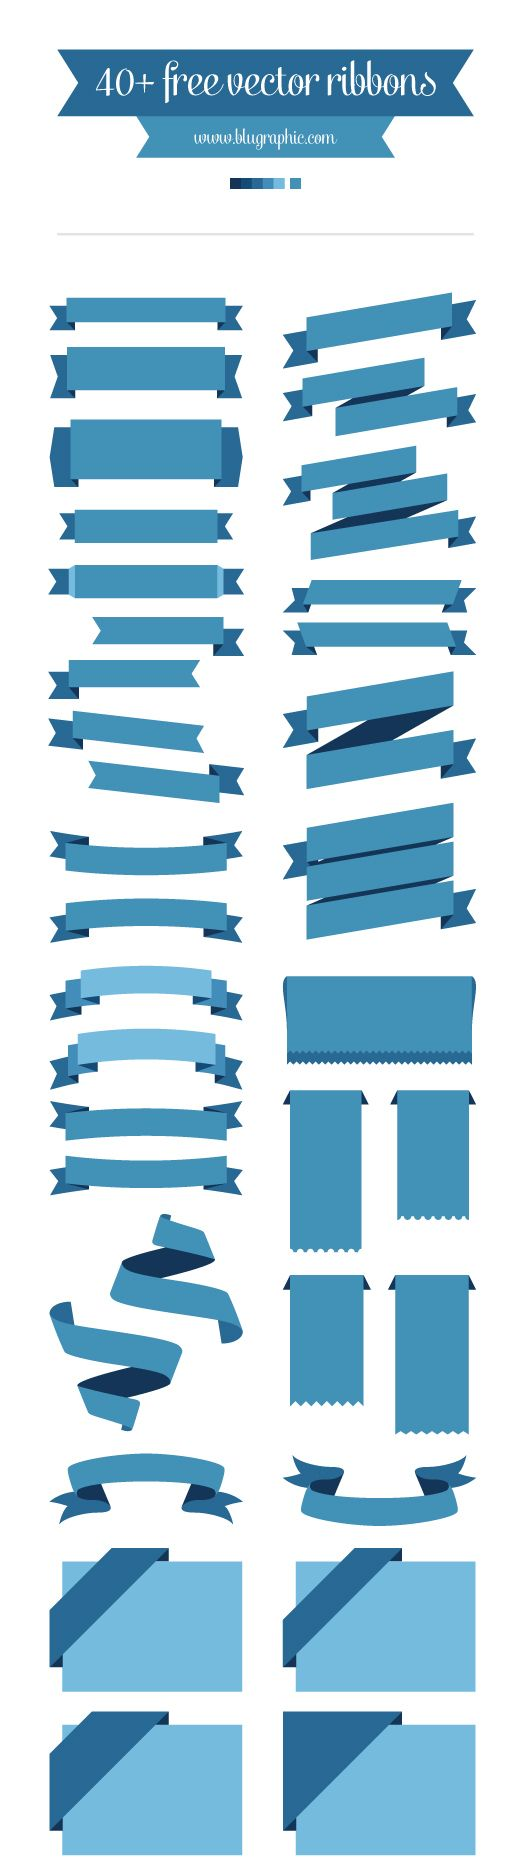 40+ Free Vector Ribbons  #graphic #design #resources